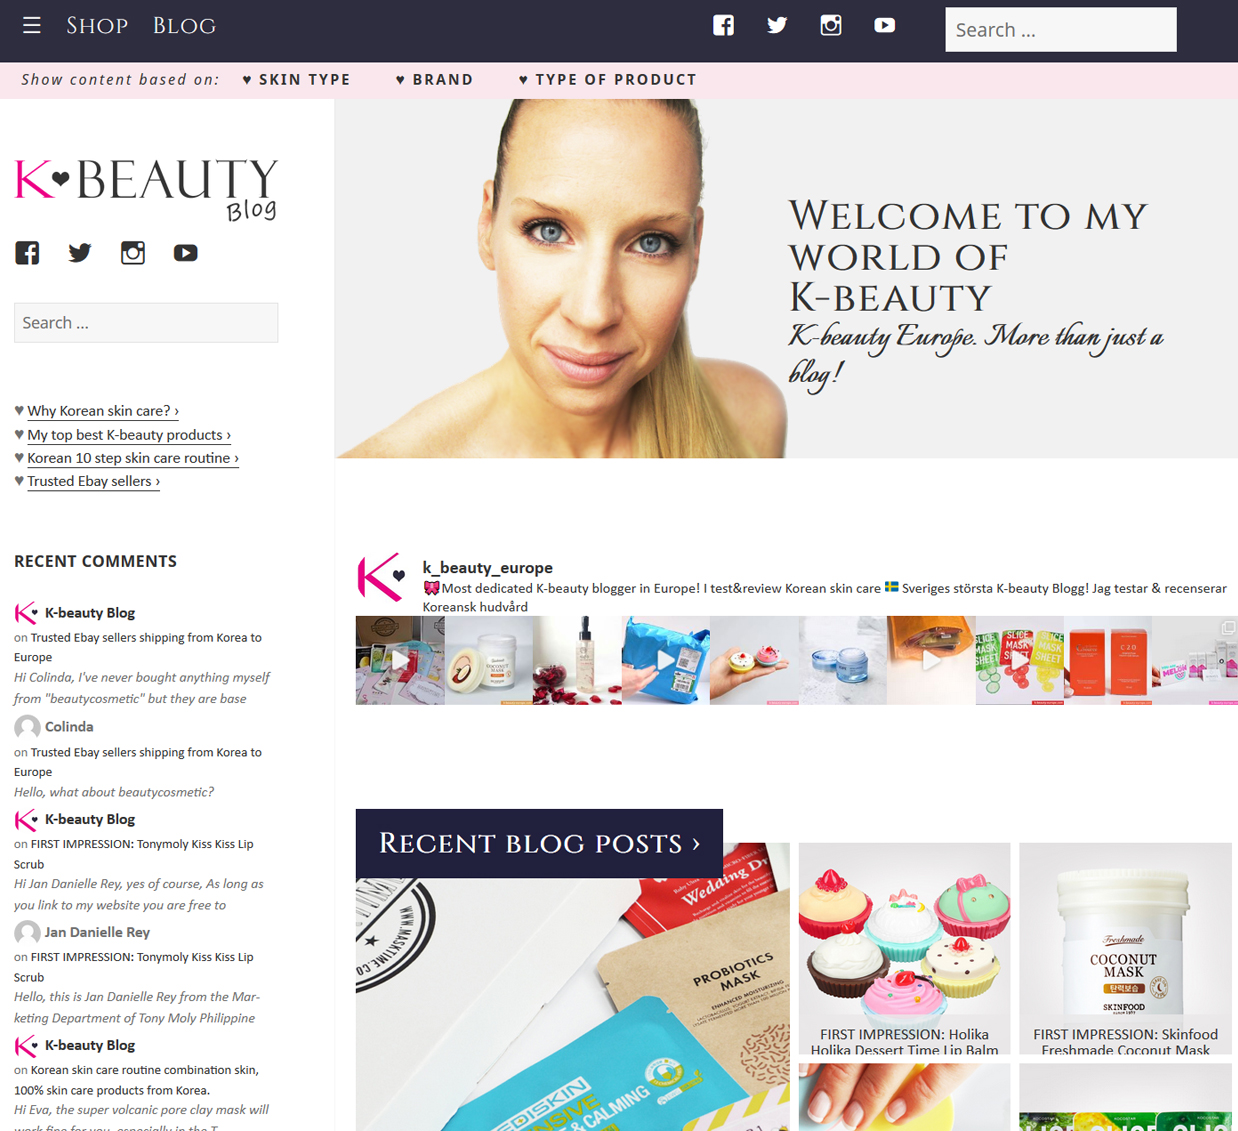 New design K-beauty Blog Europe All about Korean skin care and makeup